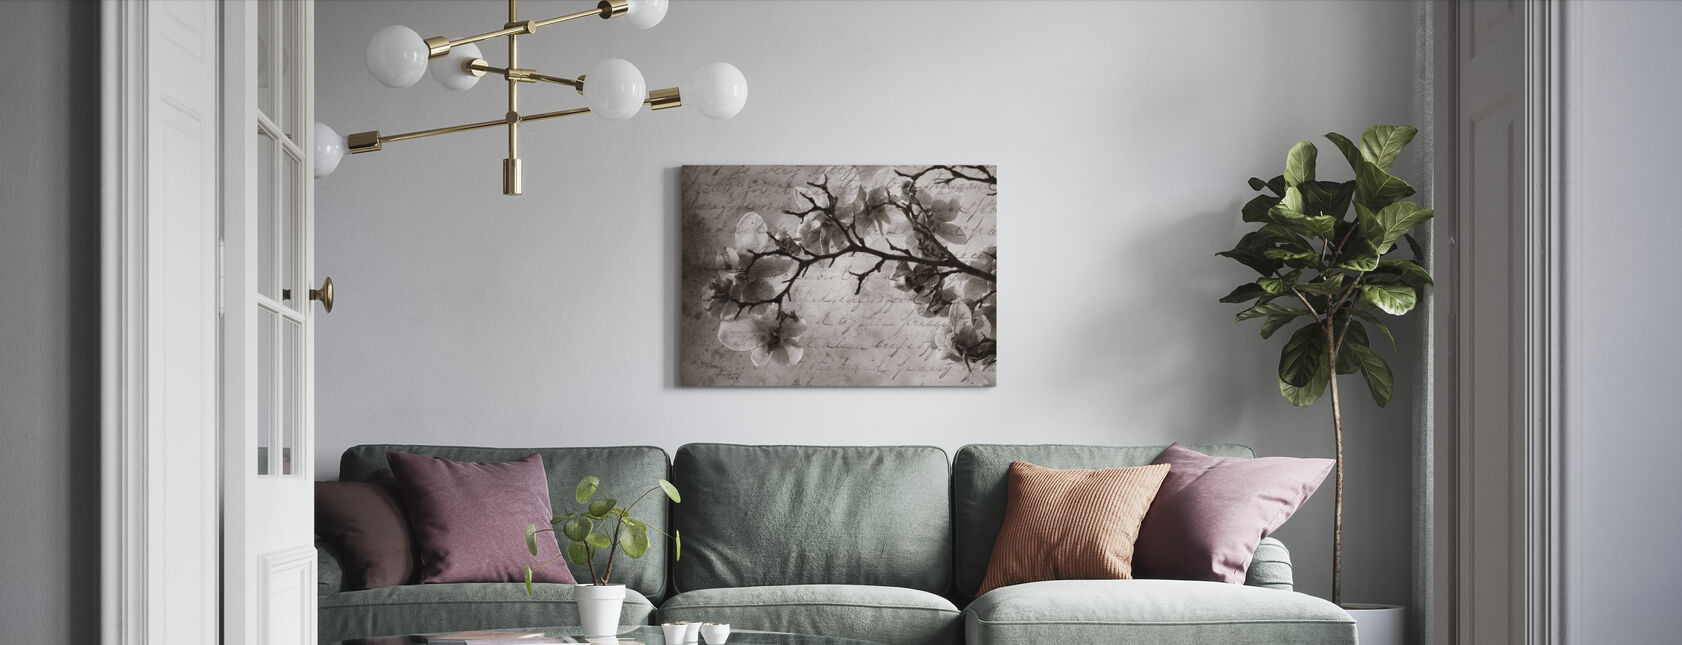 Magnolia Memories - Canvas print - Living Room